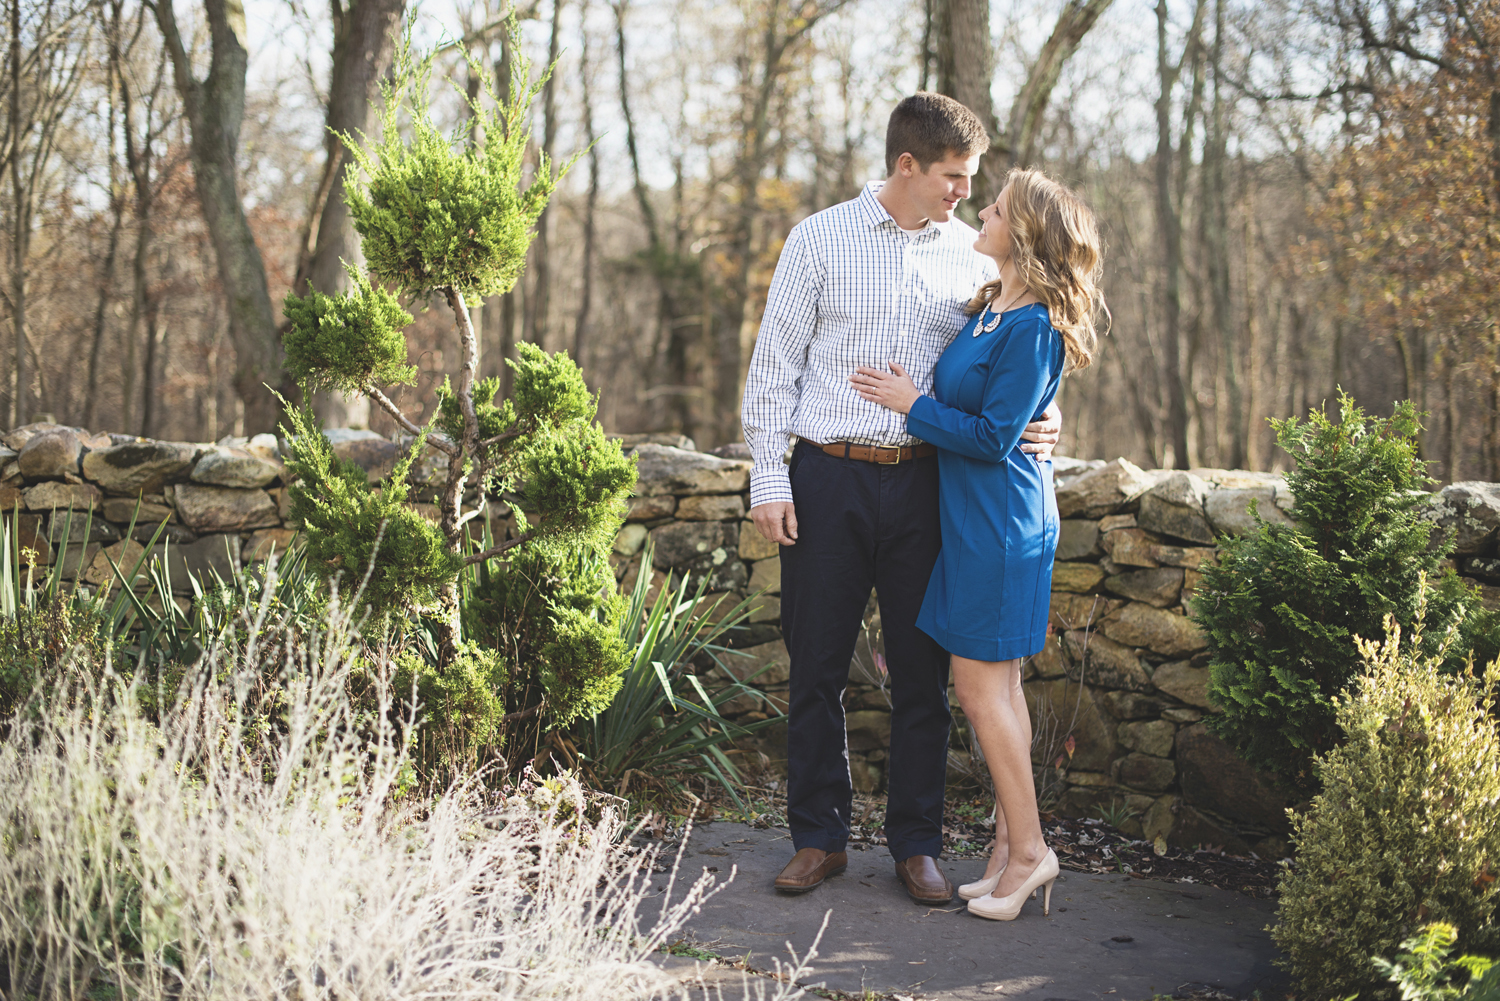 Destination Northern Virginia Engagement Session   Dressy blue and white engagement pictures